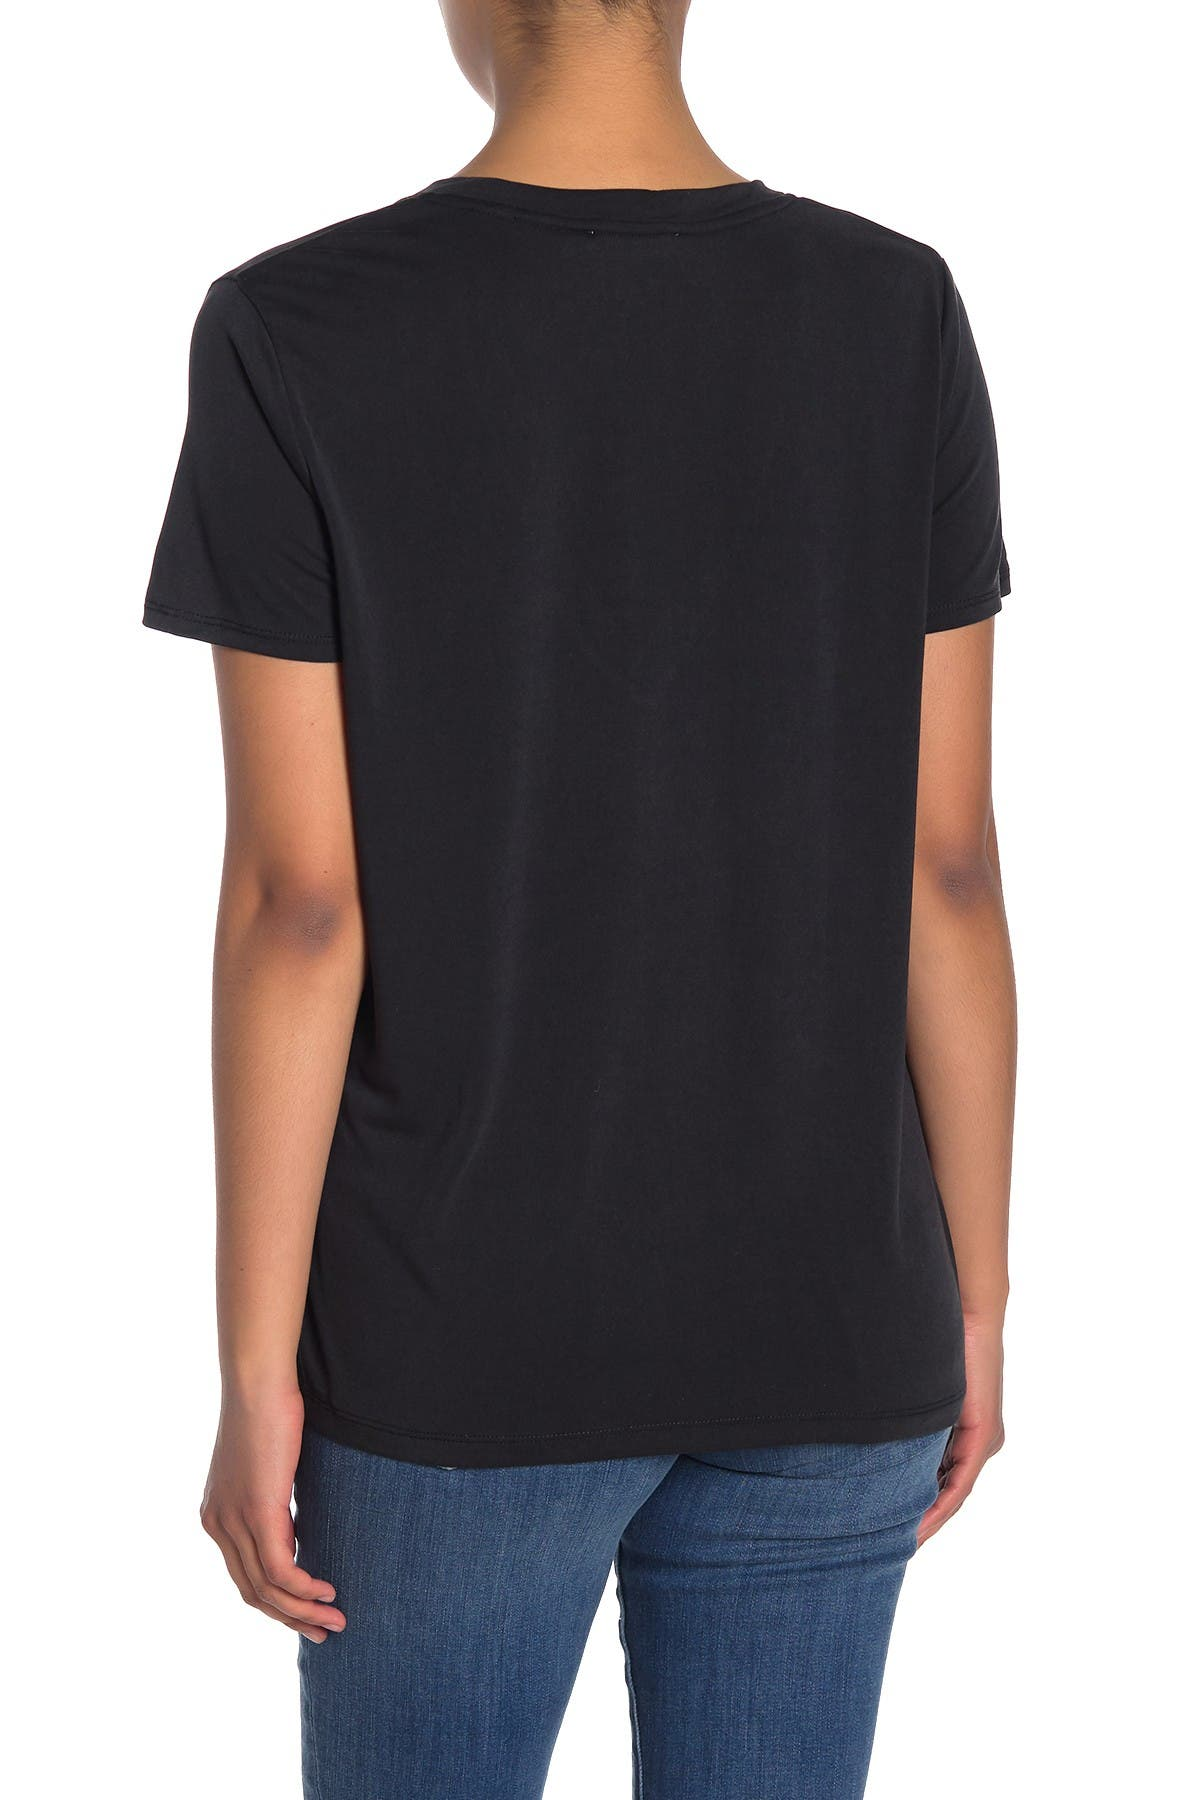 Image of Lush V-Neck Short Sleeve T-Shirt